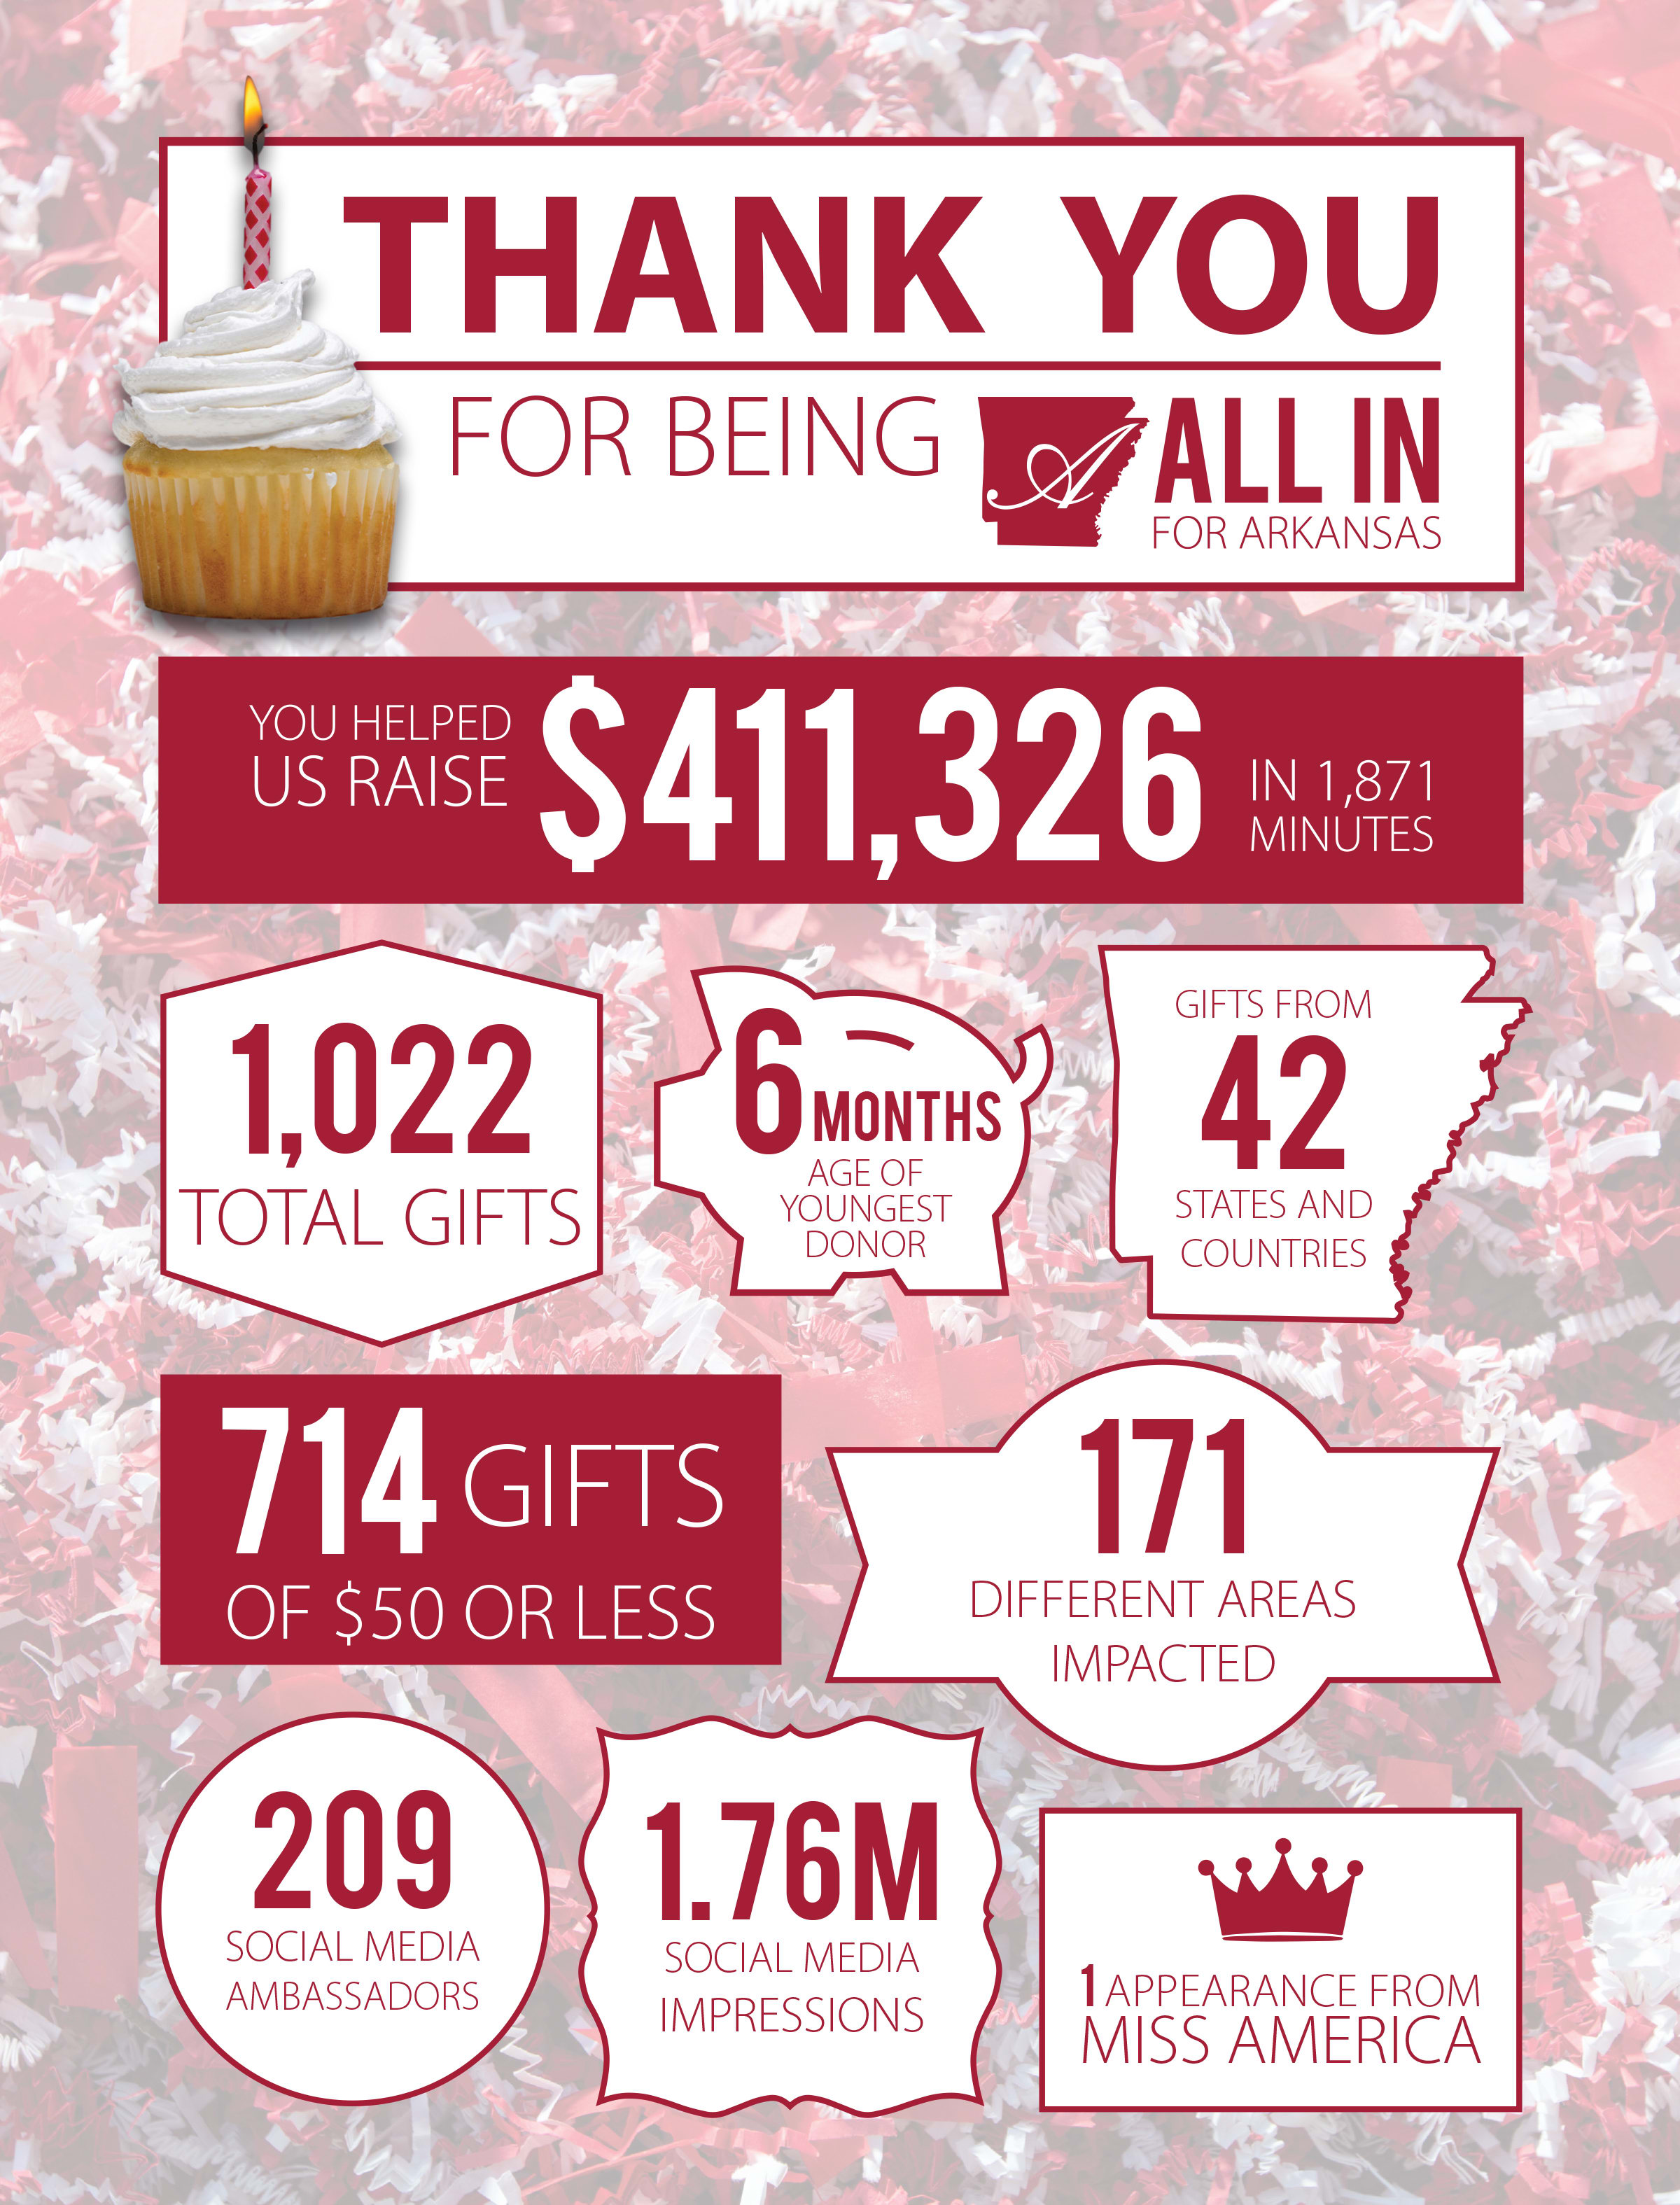 Image for Update: All in for Arkansas was an all-out success!